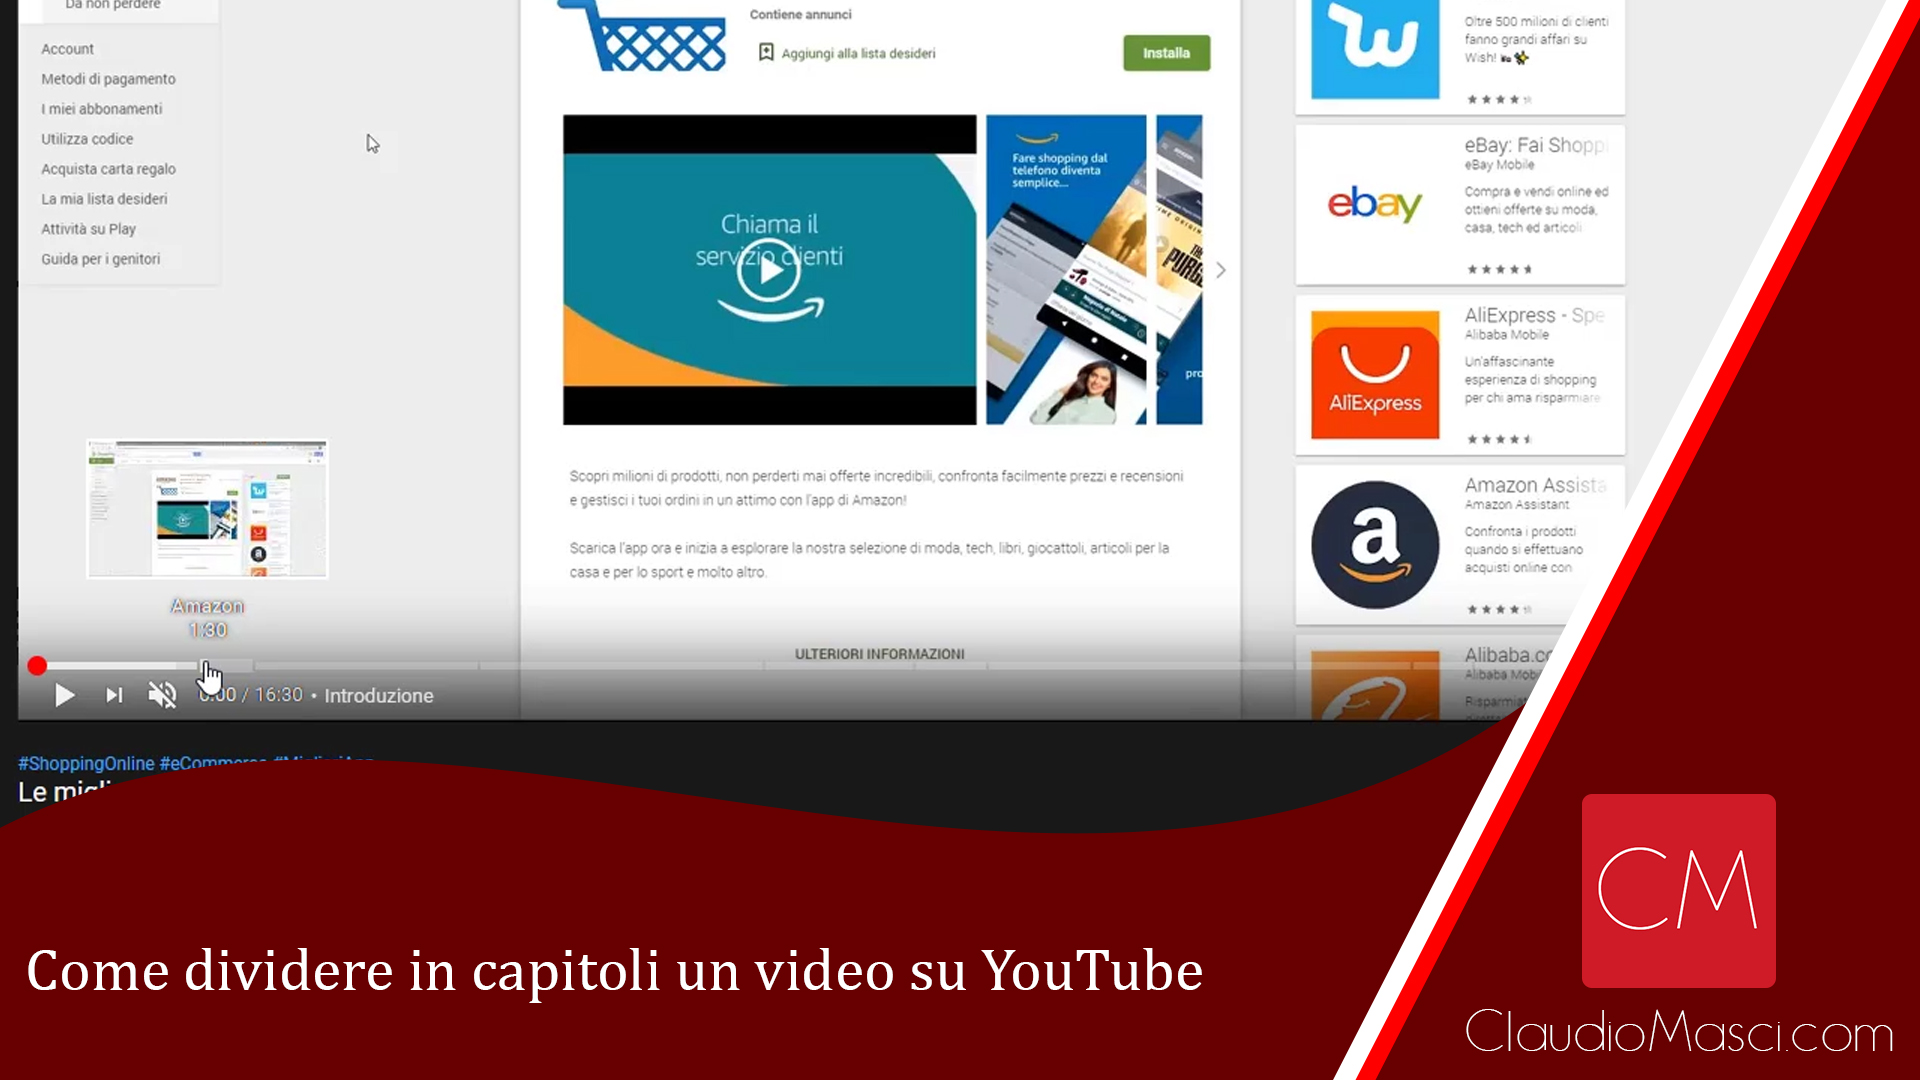 Come dividere in capitoli un video su YouTube